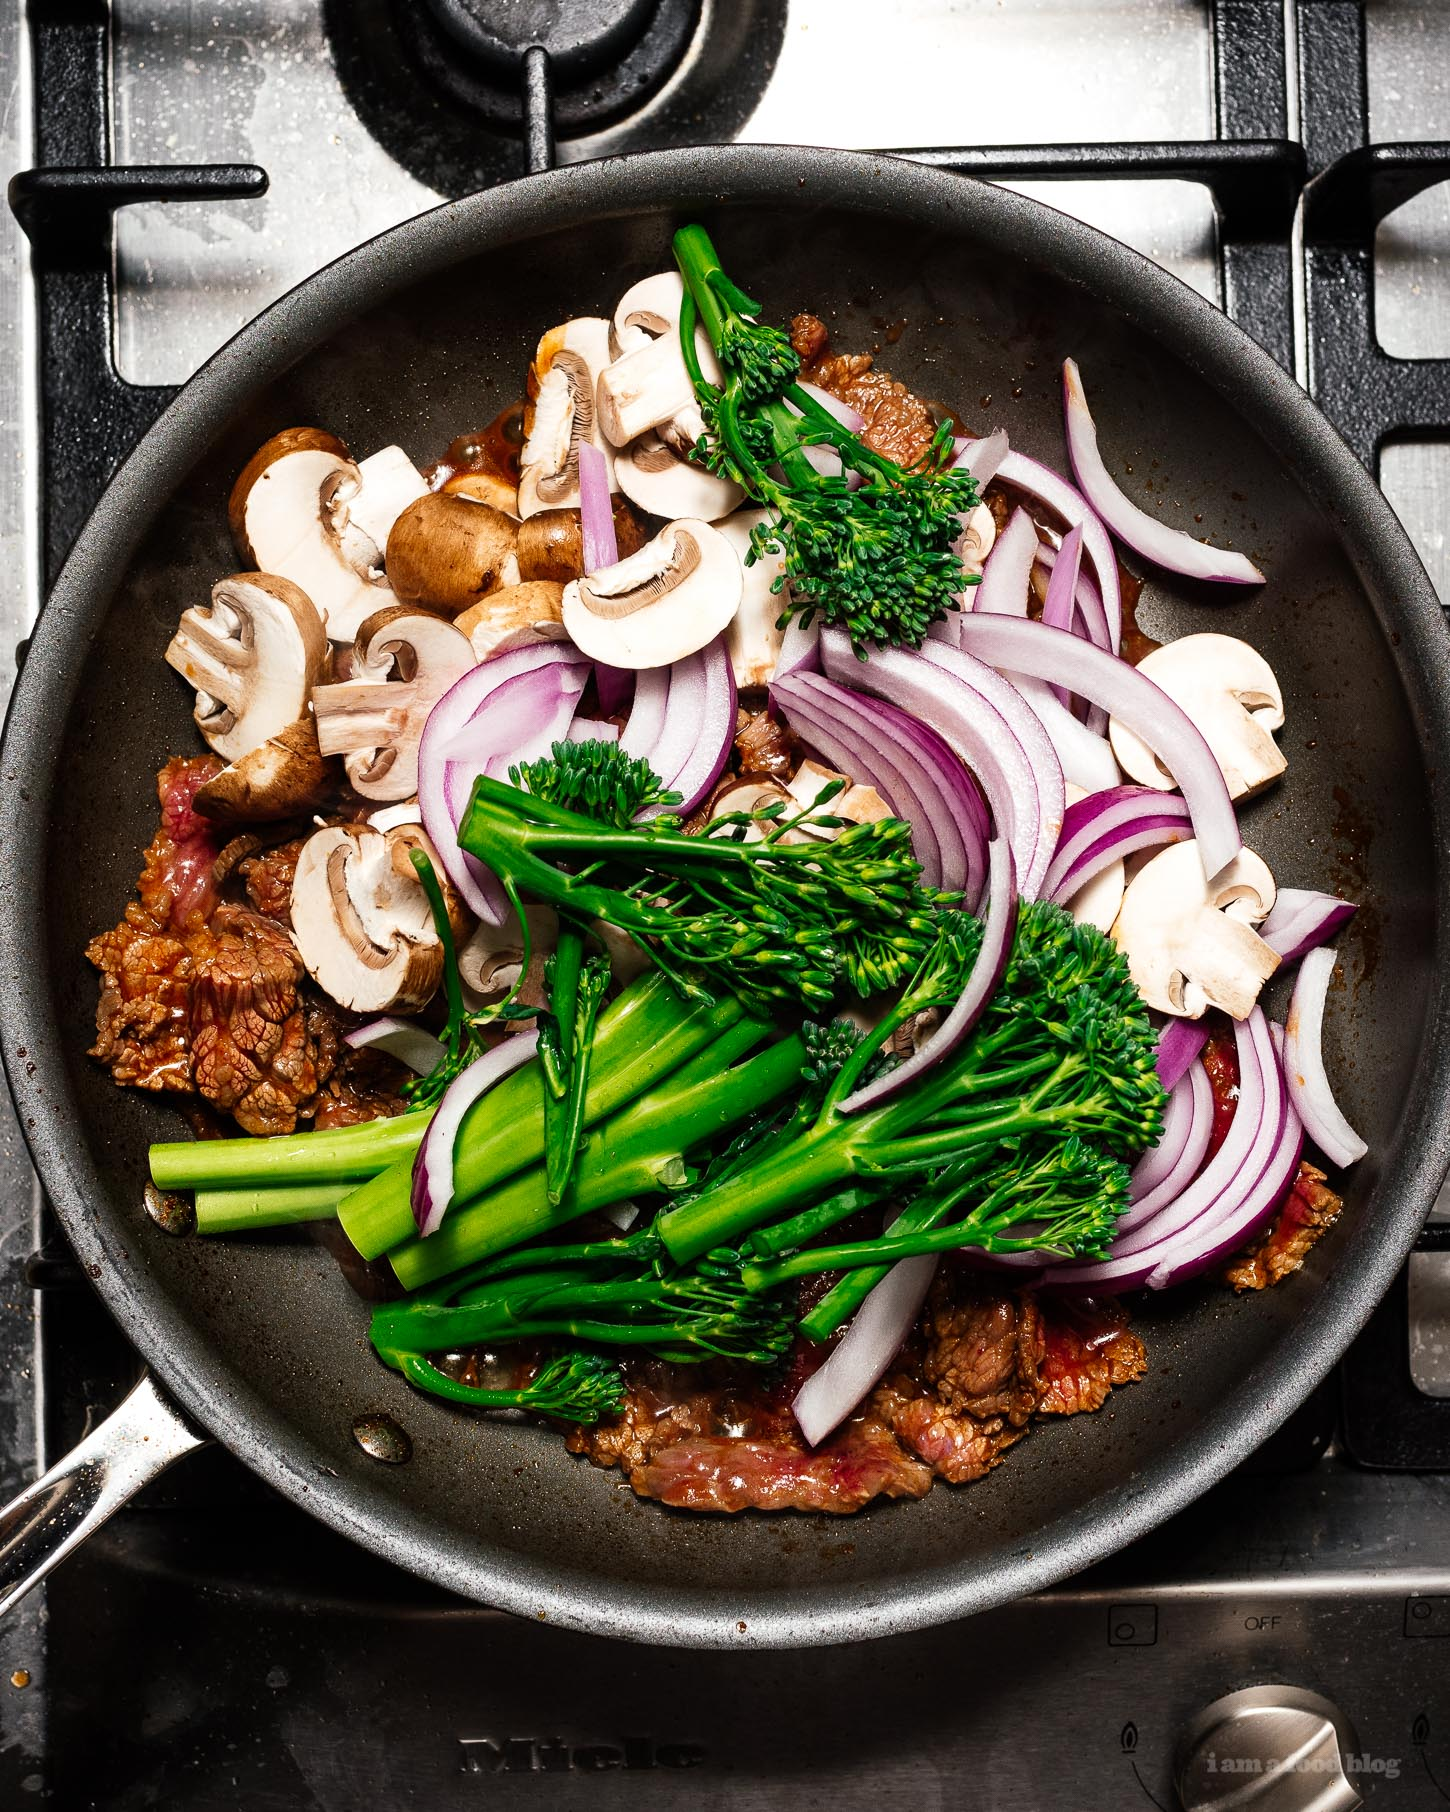 This is a weeknight stir fry udon based on japanese spicy beef that comes together easily and quickly in only 10 minutes. It's spicy, savory, and irresistably delicious. You'll never believe it only has 8 ingredients. #udon #weeknight #stirfry